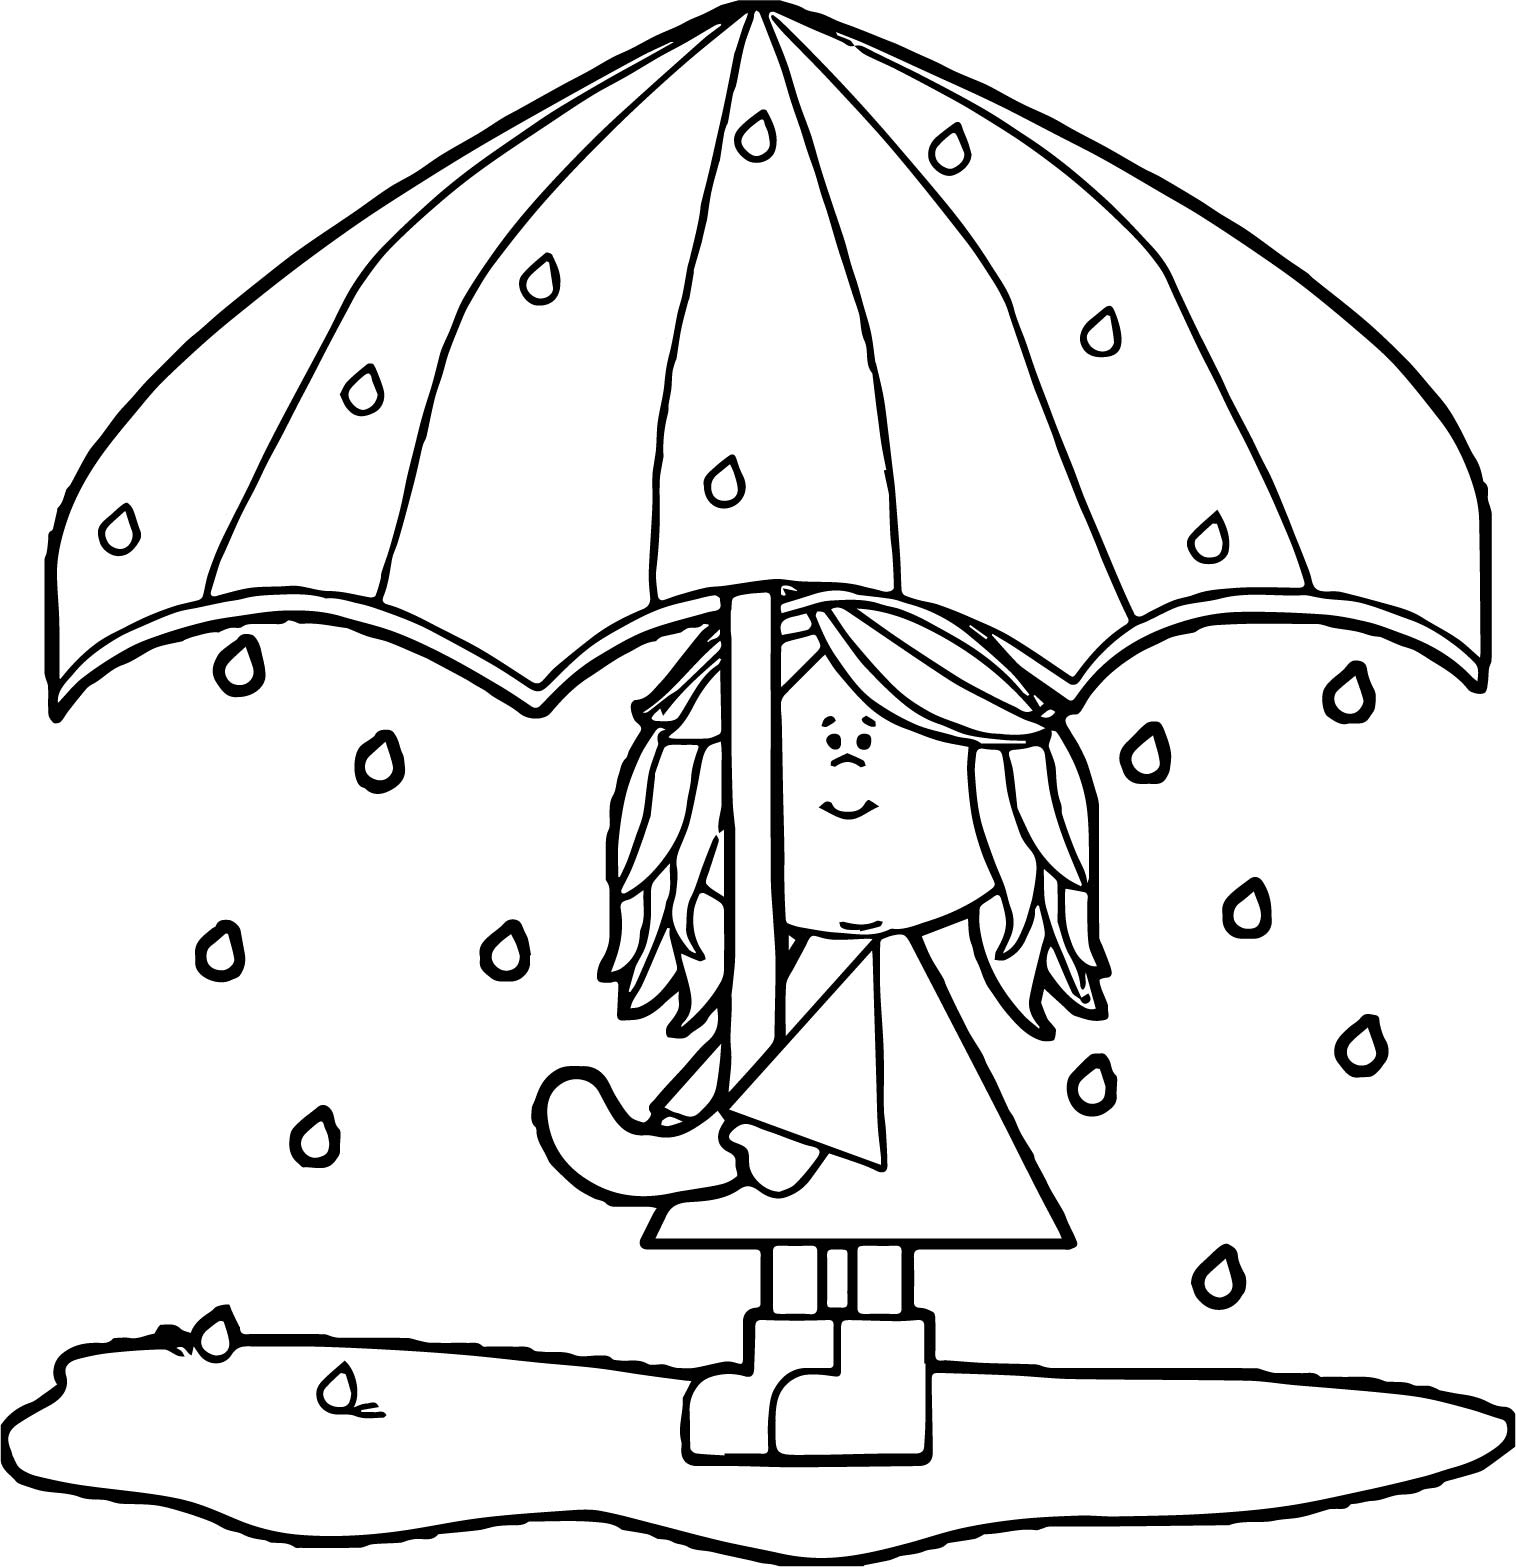 1516x1567 April Showers Coloring Pages Lovely Free Umbrella Rain Coloring